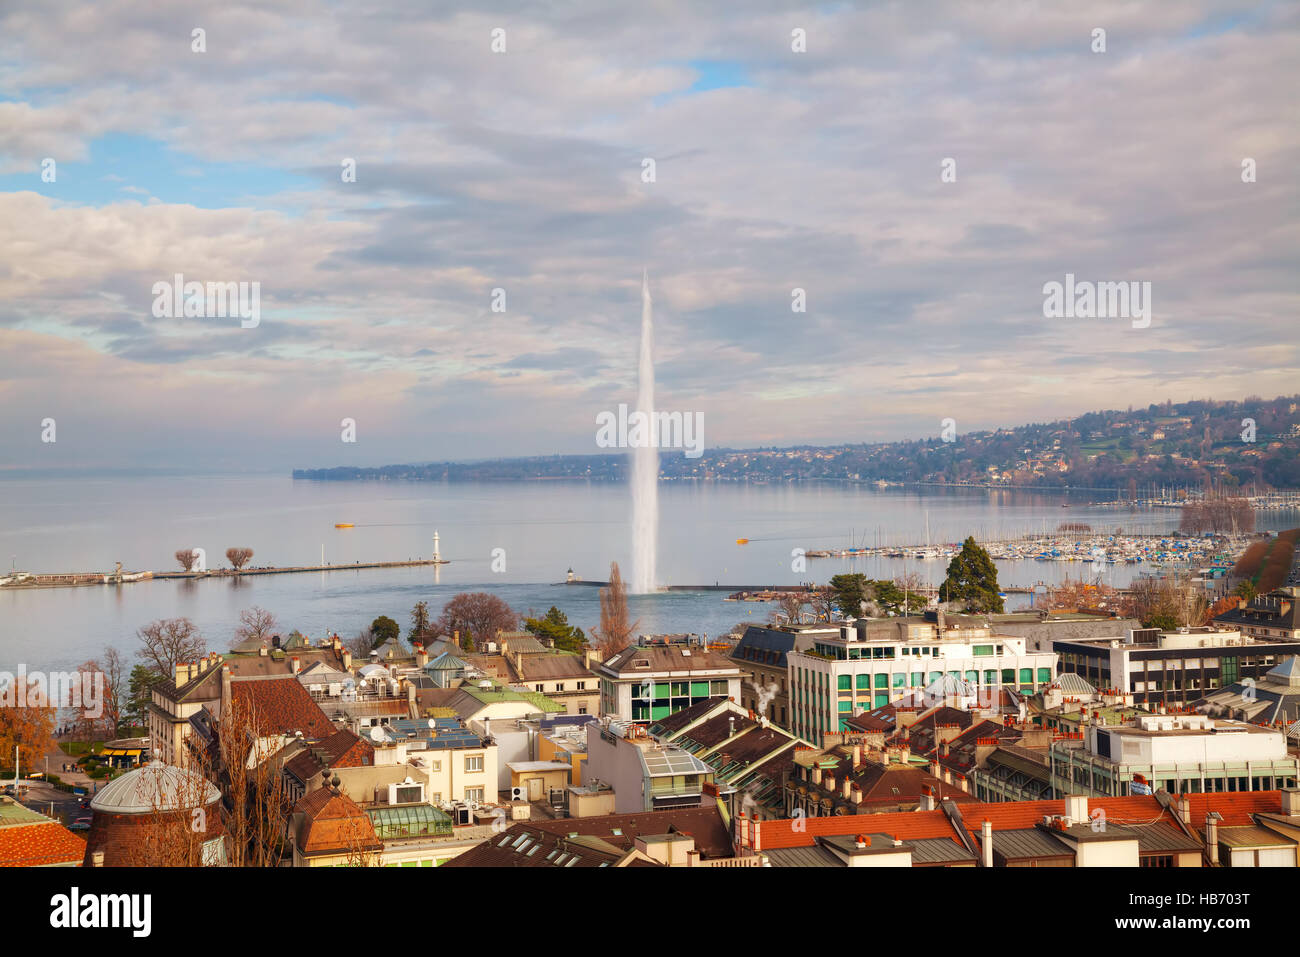 Aerial view of Geneva, Switzerland - Stock Image